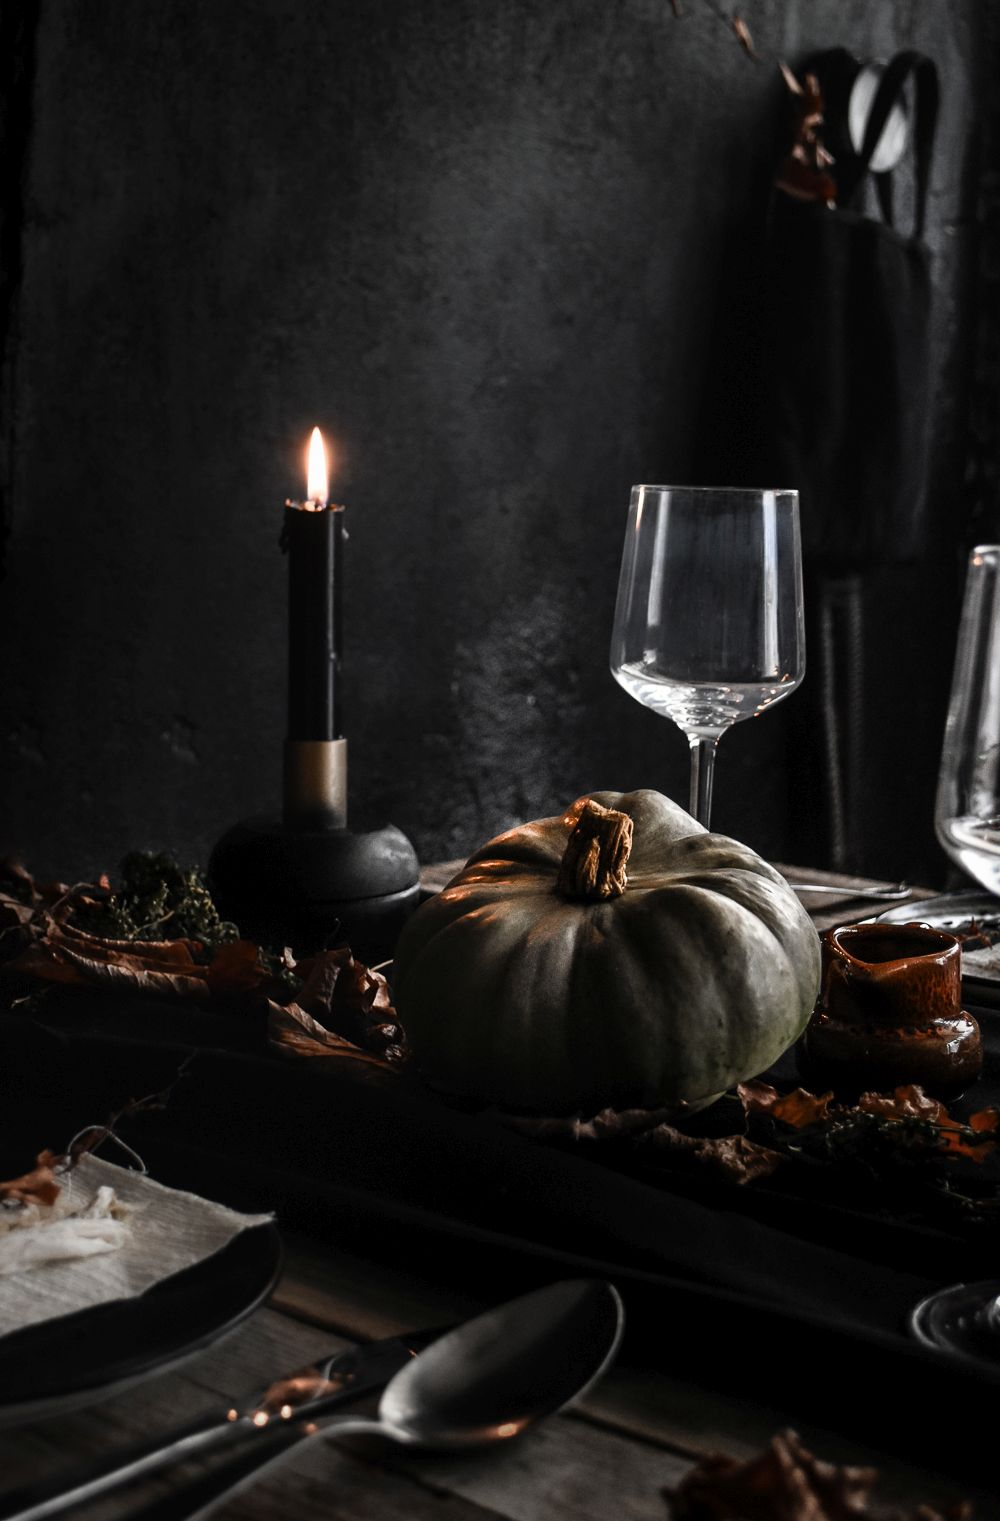 Delicieux Halloween Table Setting Idea   Black Candles And Pumpkin